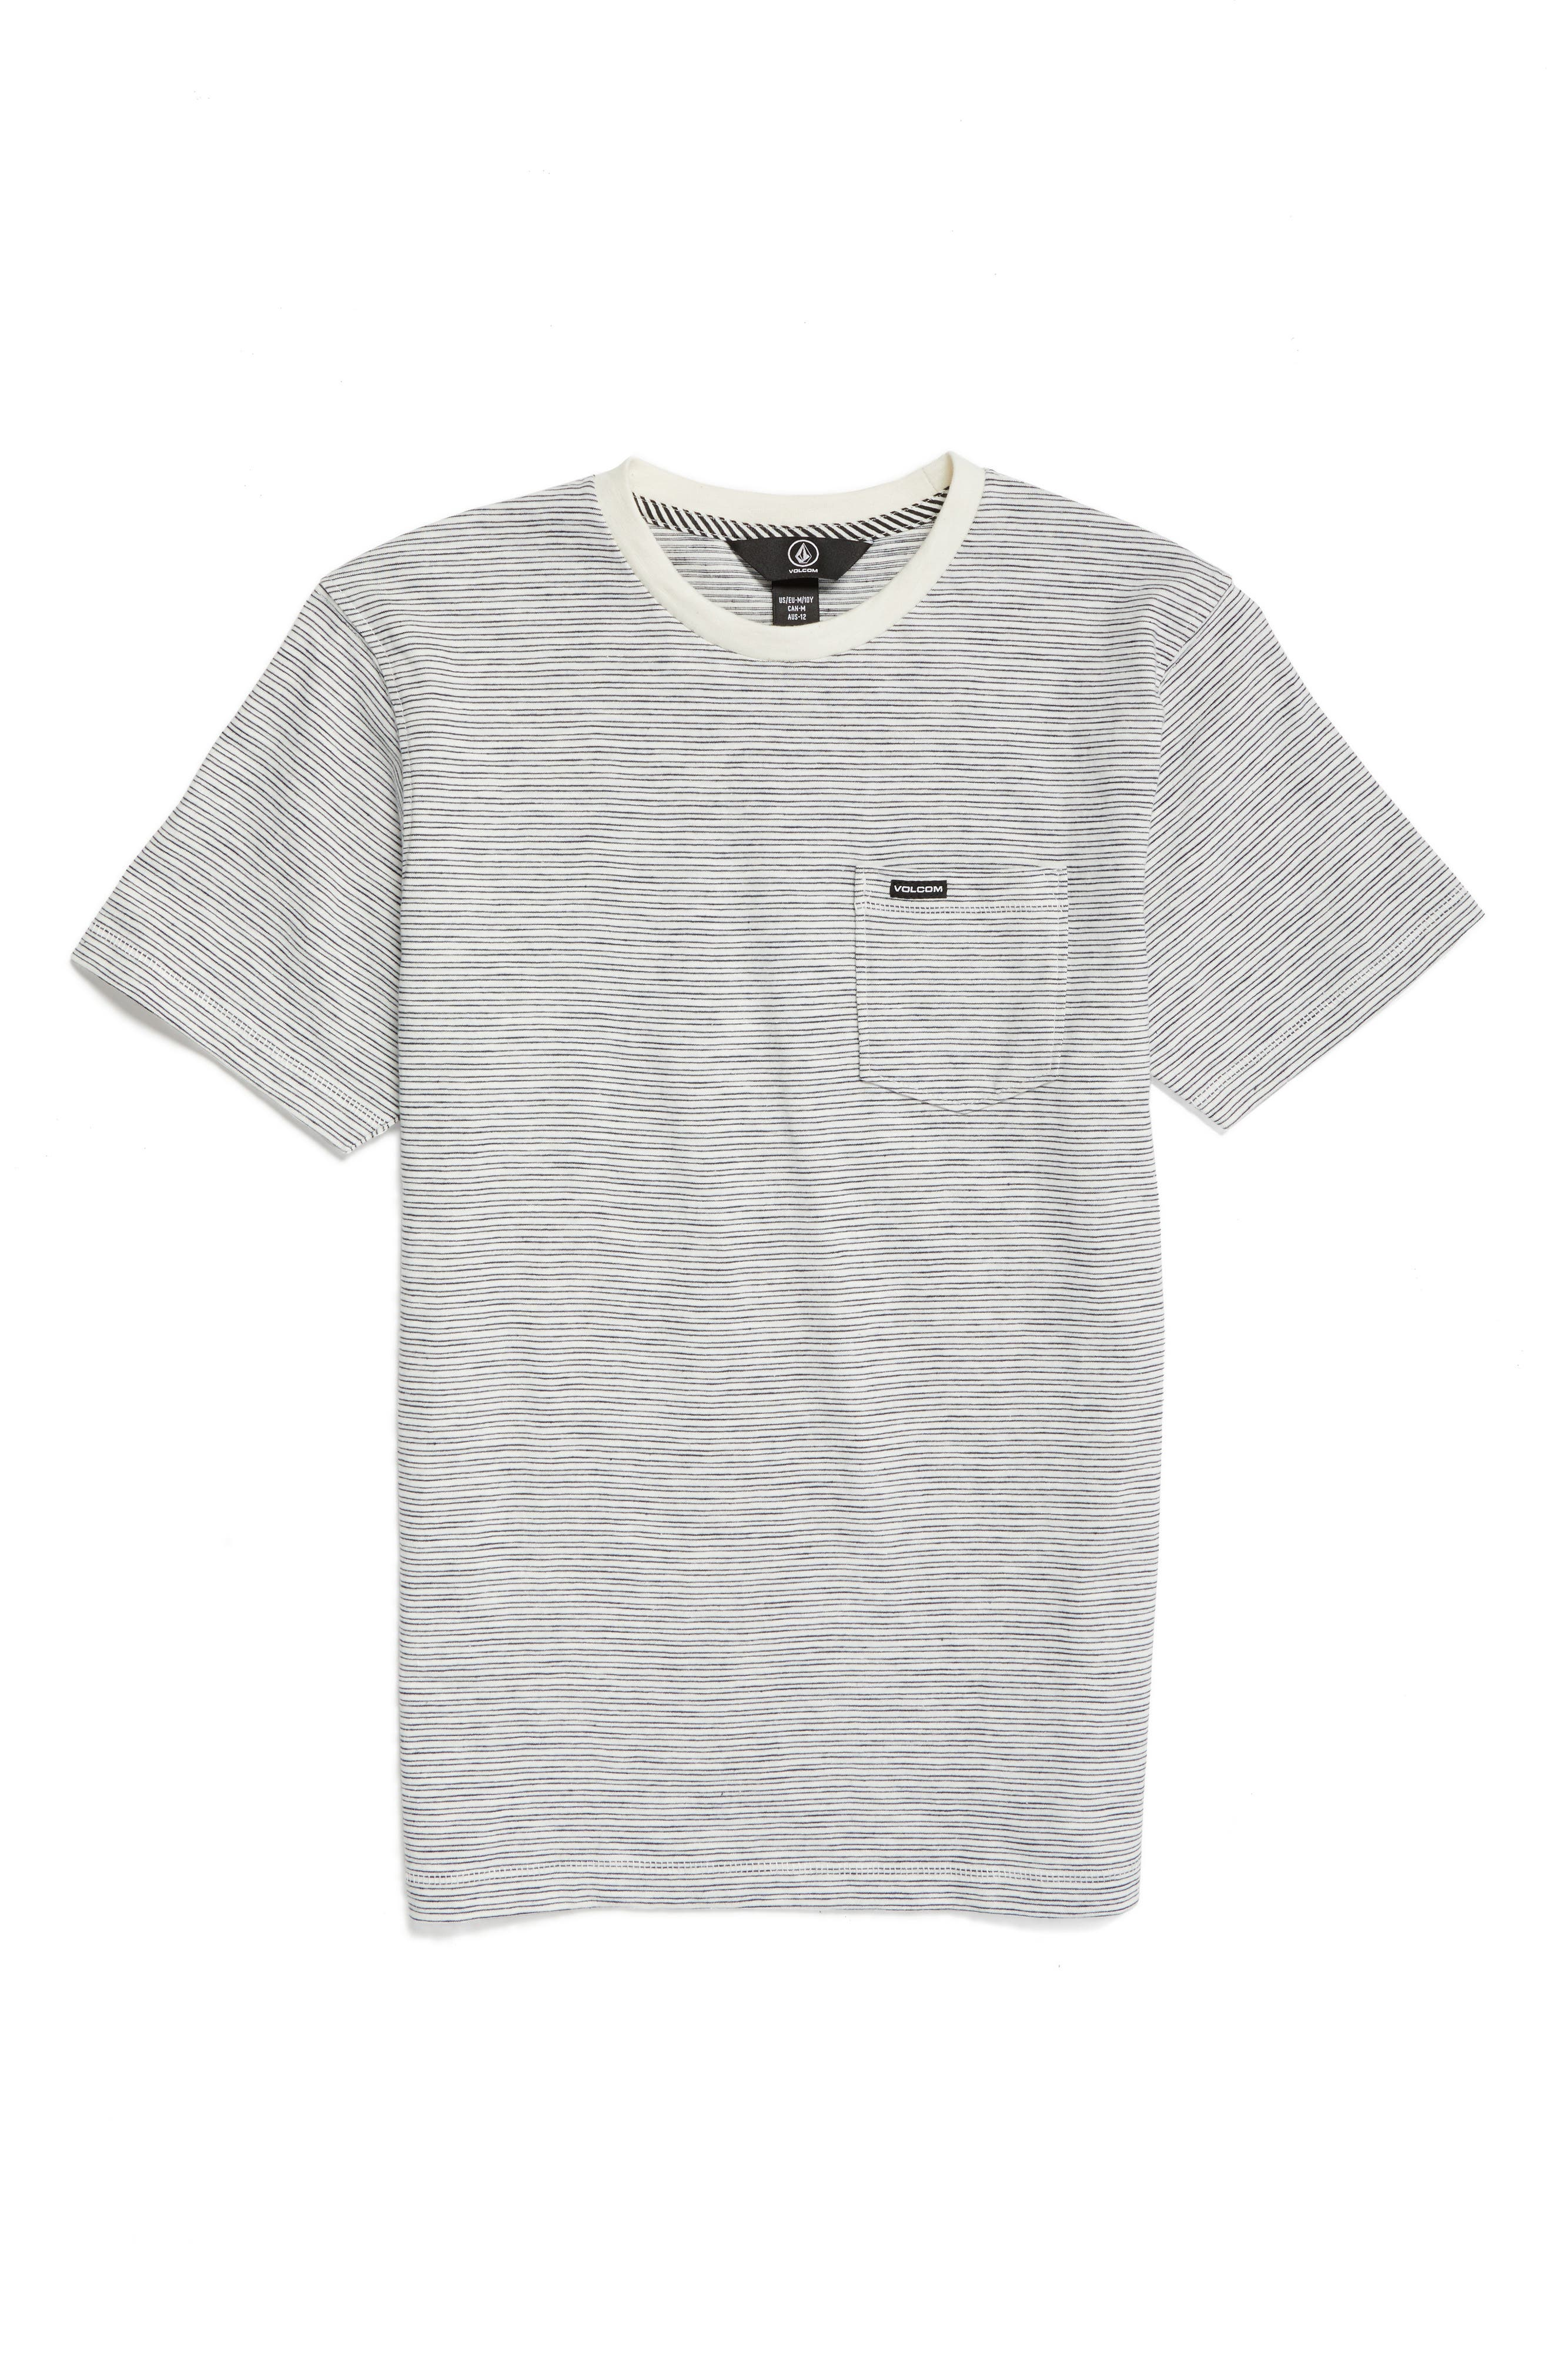 Main Image - Volcom Bonus T-Shirt (Big Boys)